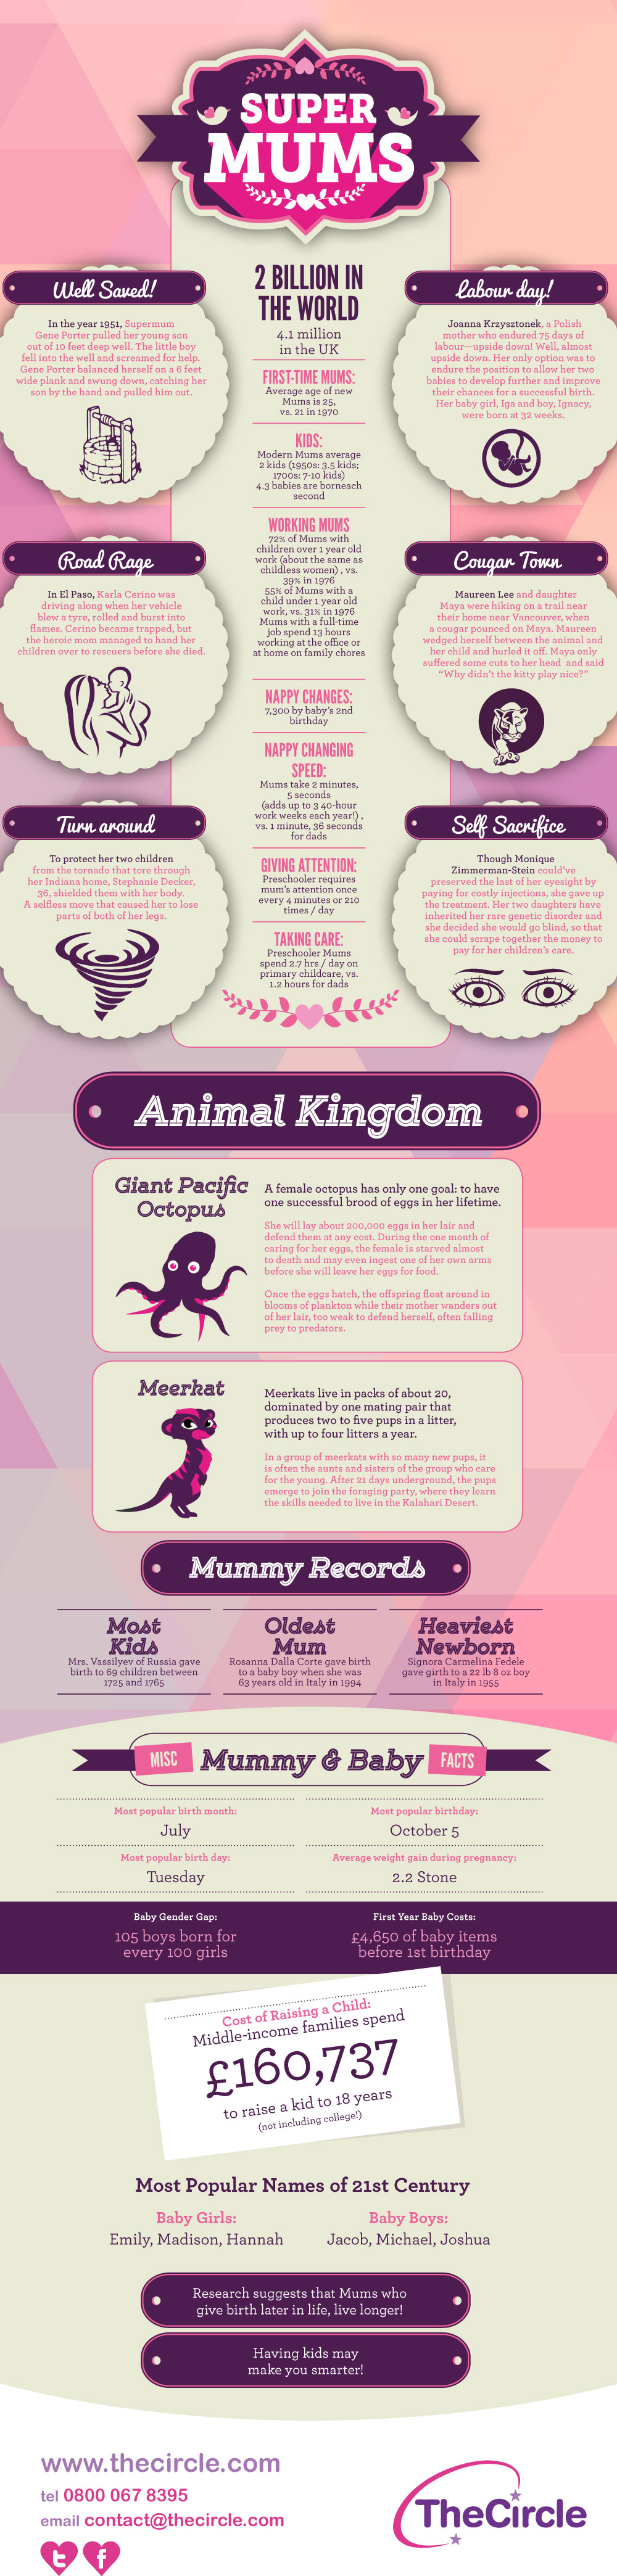 Super Mums - (INFOGRAPHIC)